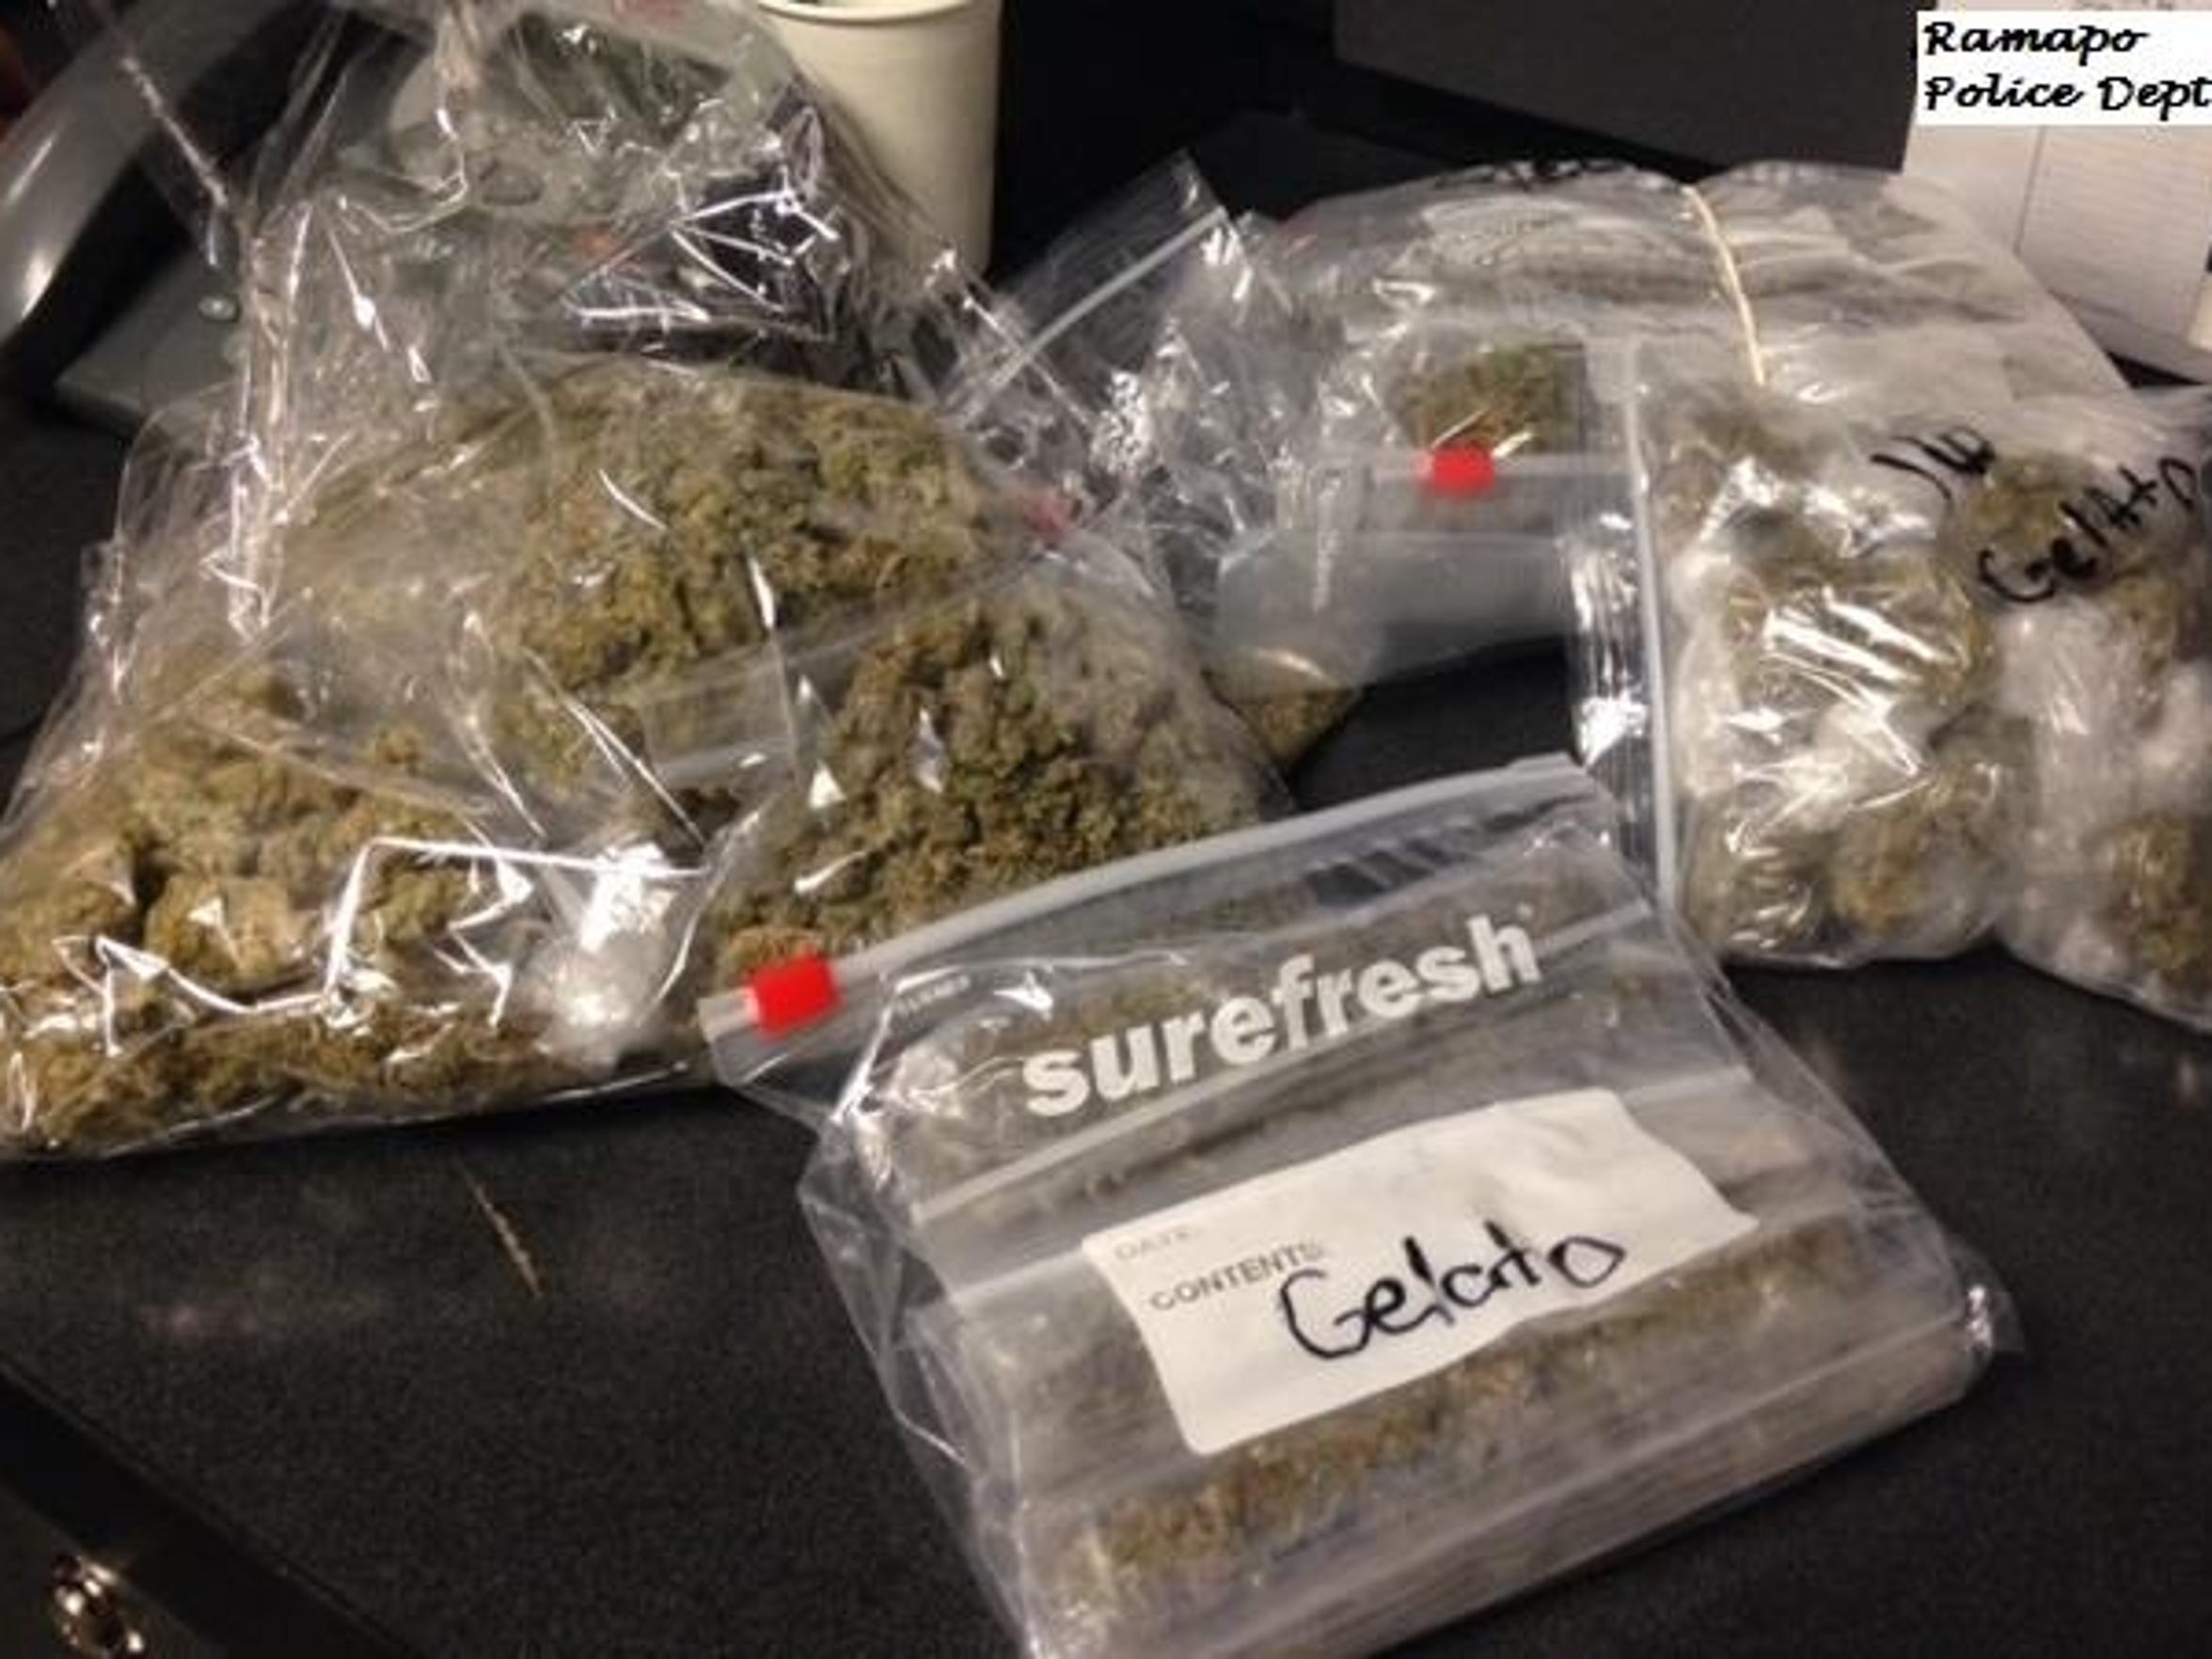 Ramapo police seized 2 pounds of marijuana after a traffic stop last year.